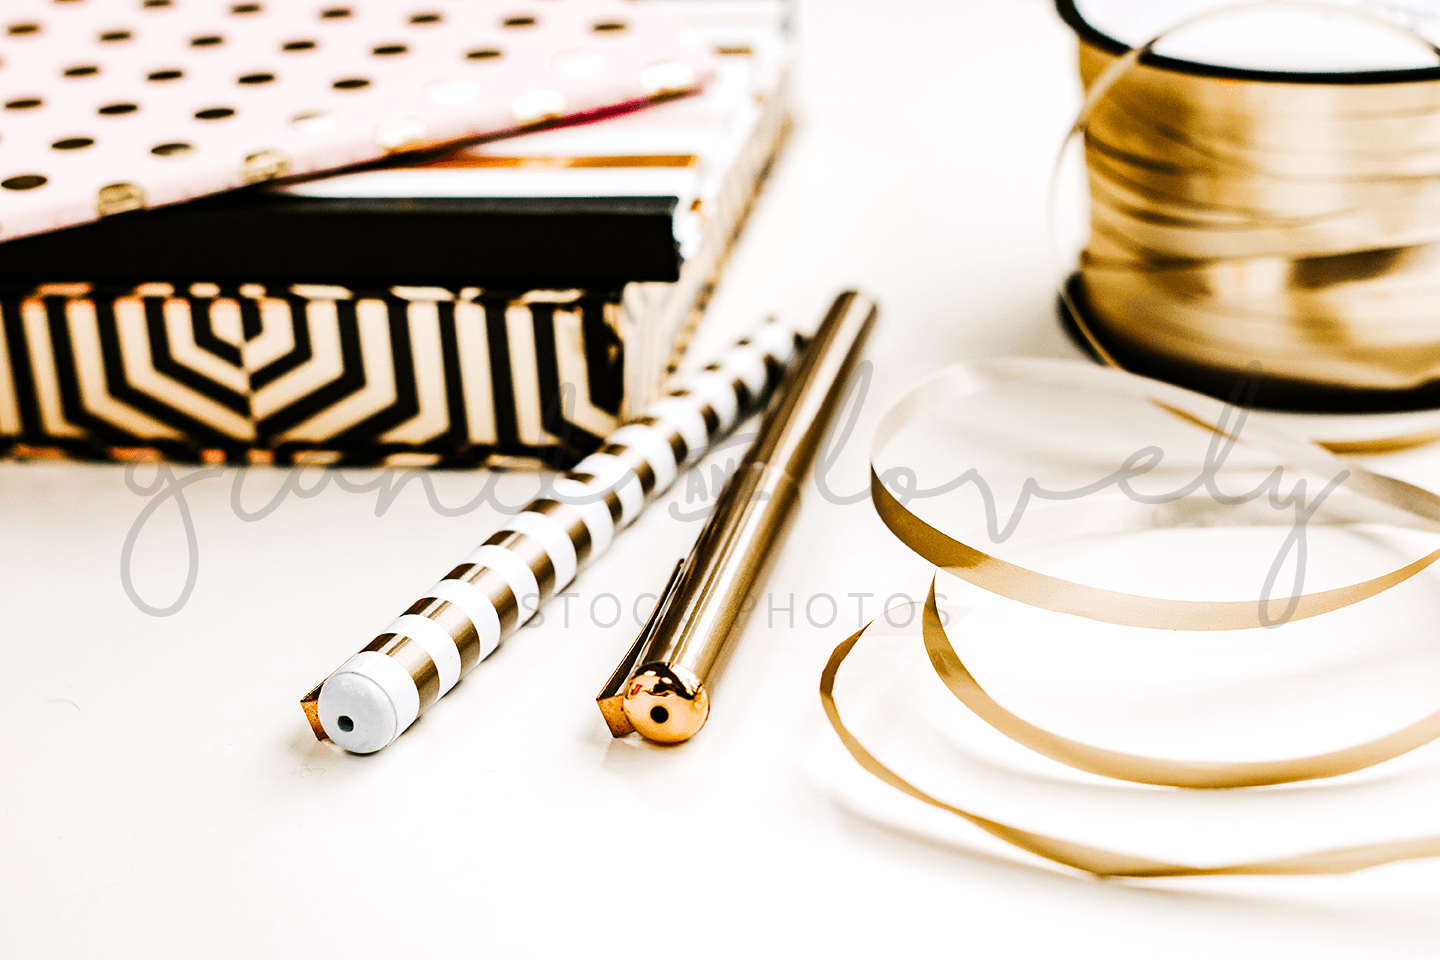 New Images | The GOLD Styled Stock Photo Collection